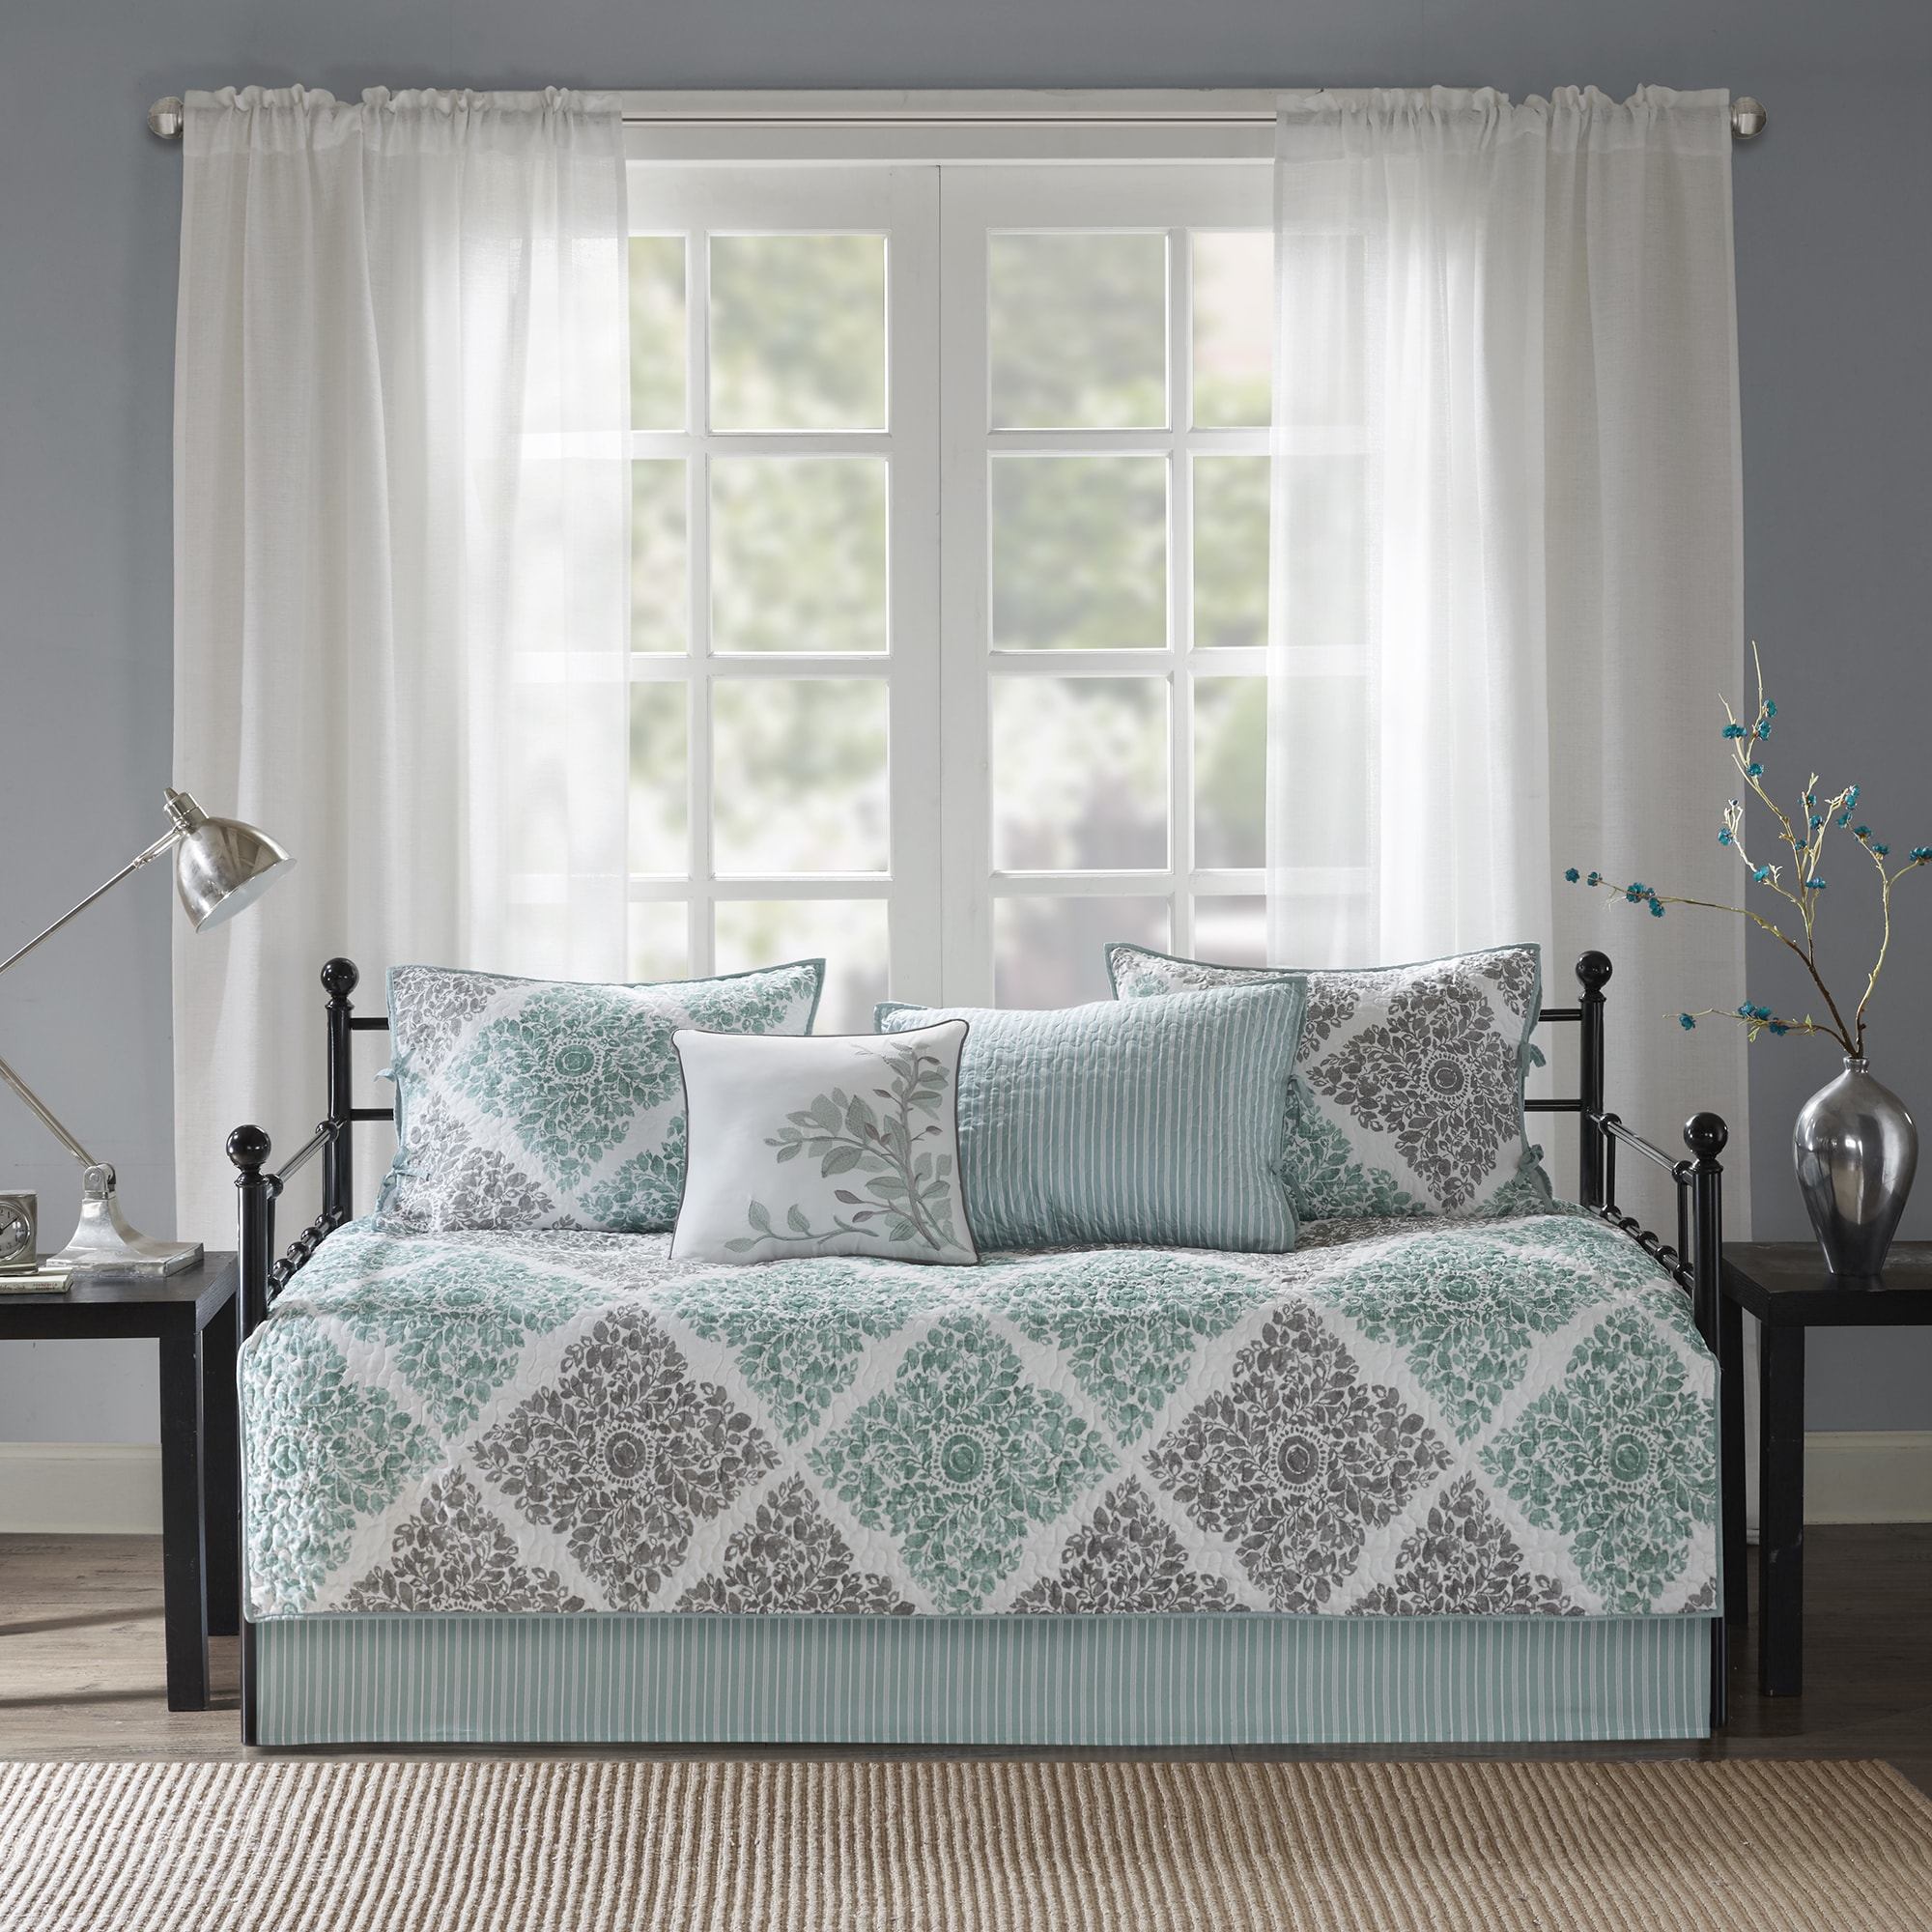 Awe Inspiring Shabby Chic Daybed Covers Sets Find Great Bedding Deals Interior Design Ideas Philsoteloinfo